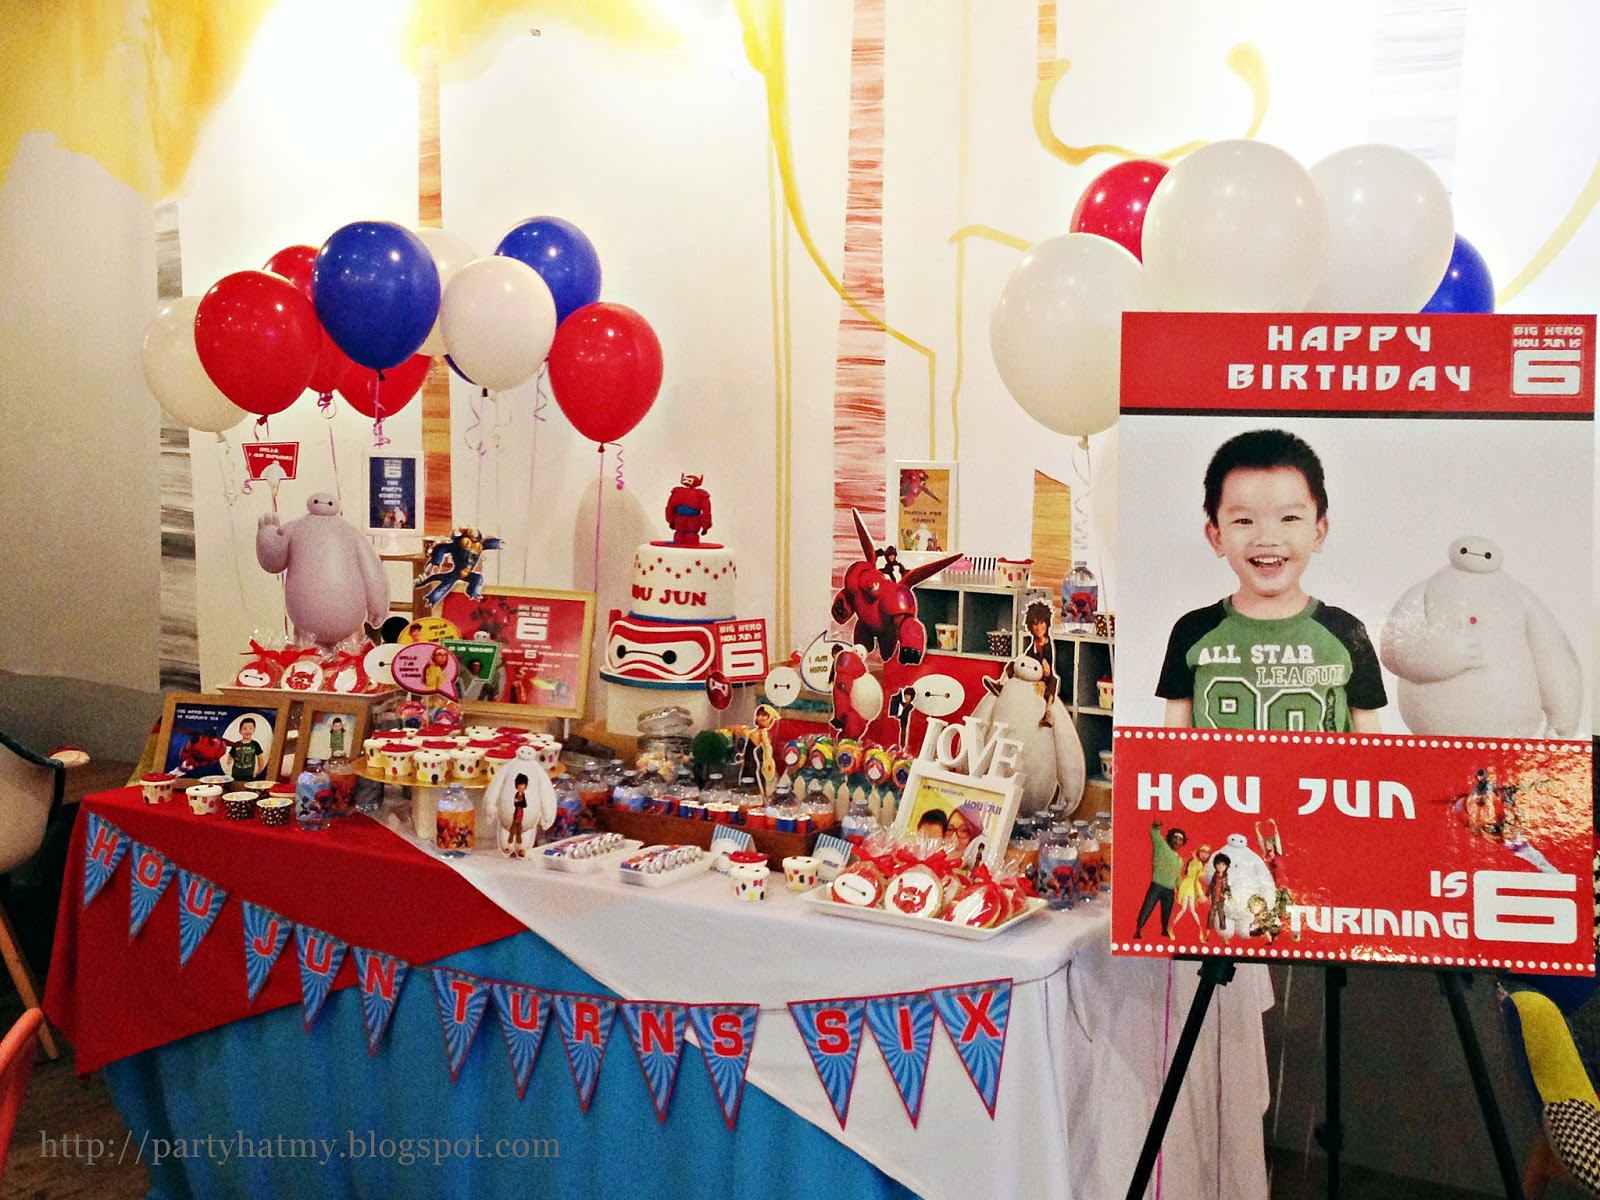 Big Hero 6 Focus On Baymax Birthday Party For Hou Jun Stuff Your Face Jaya Shopping Centre